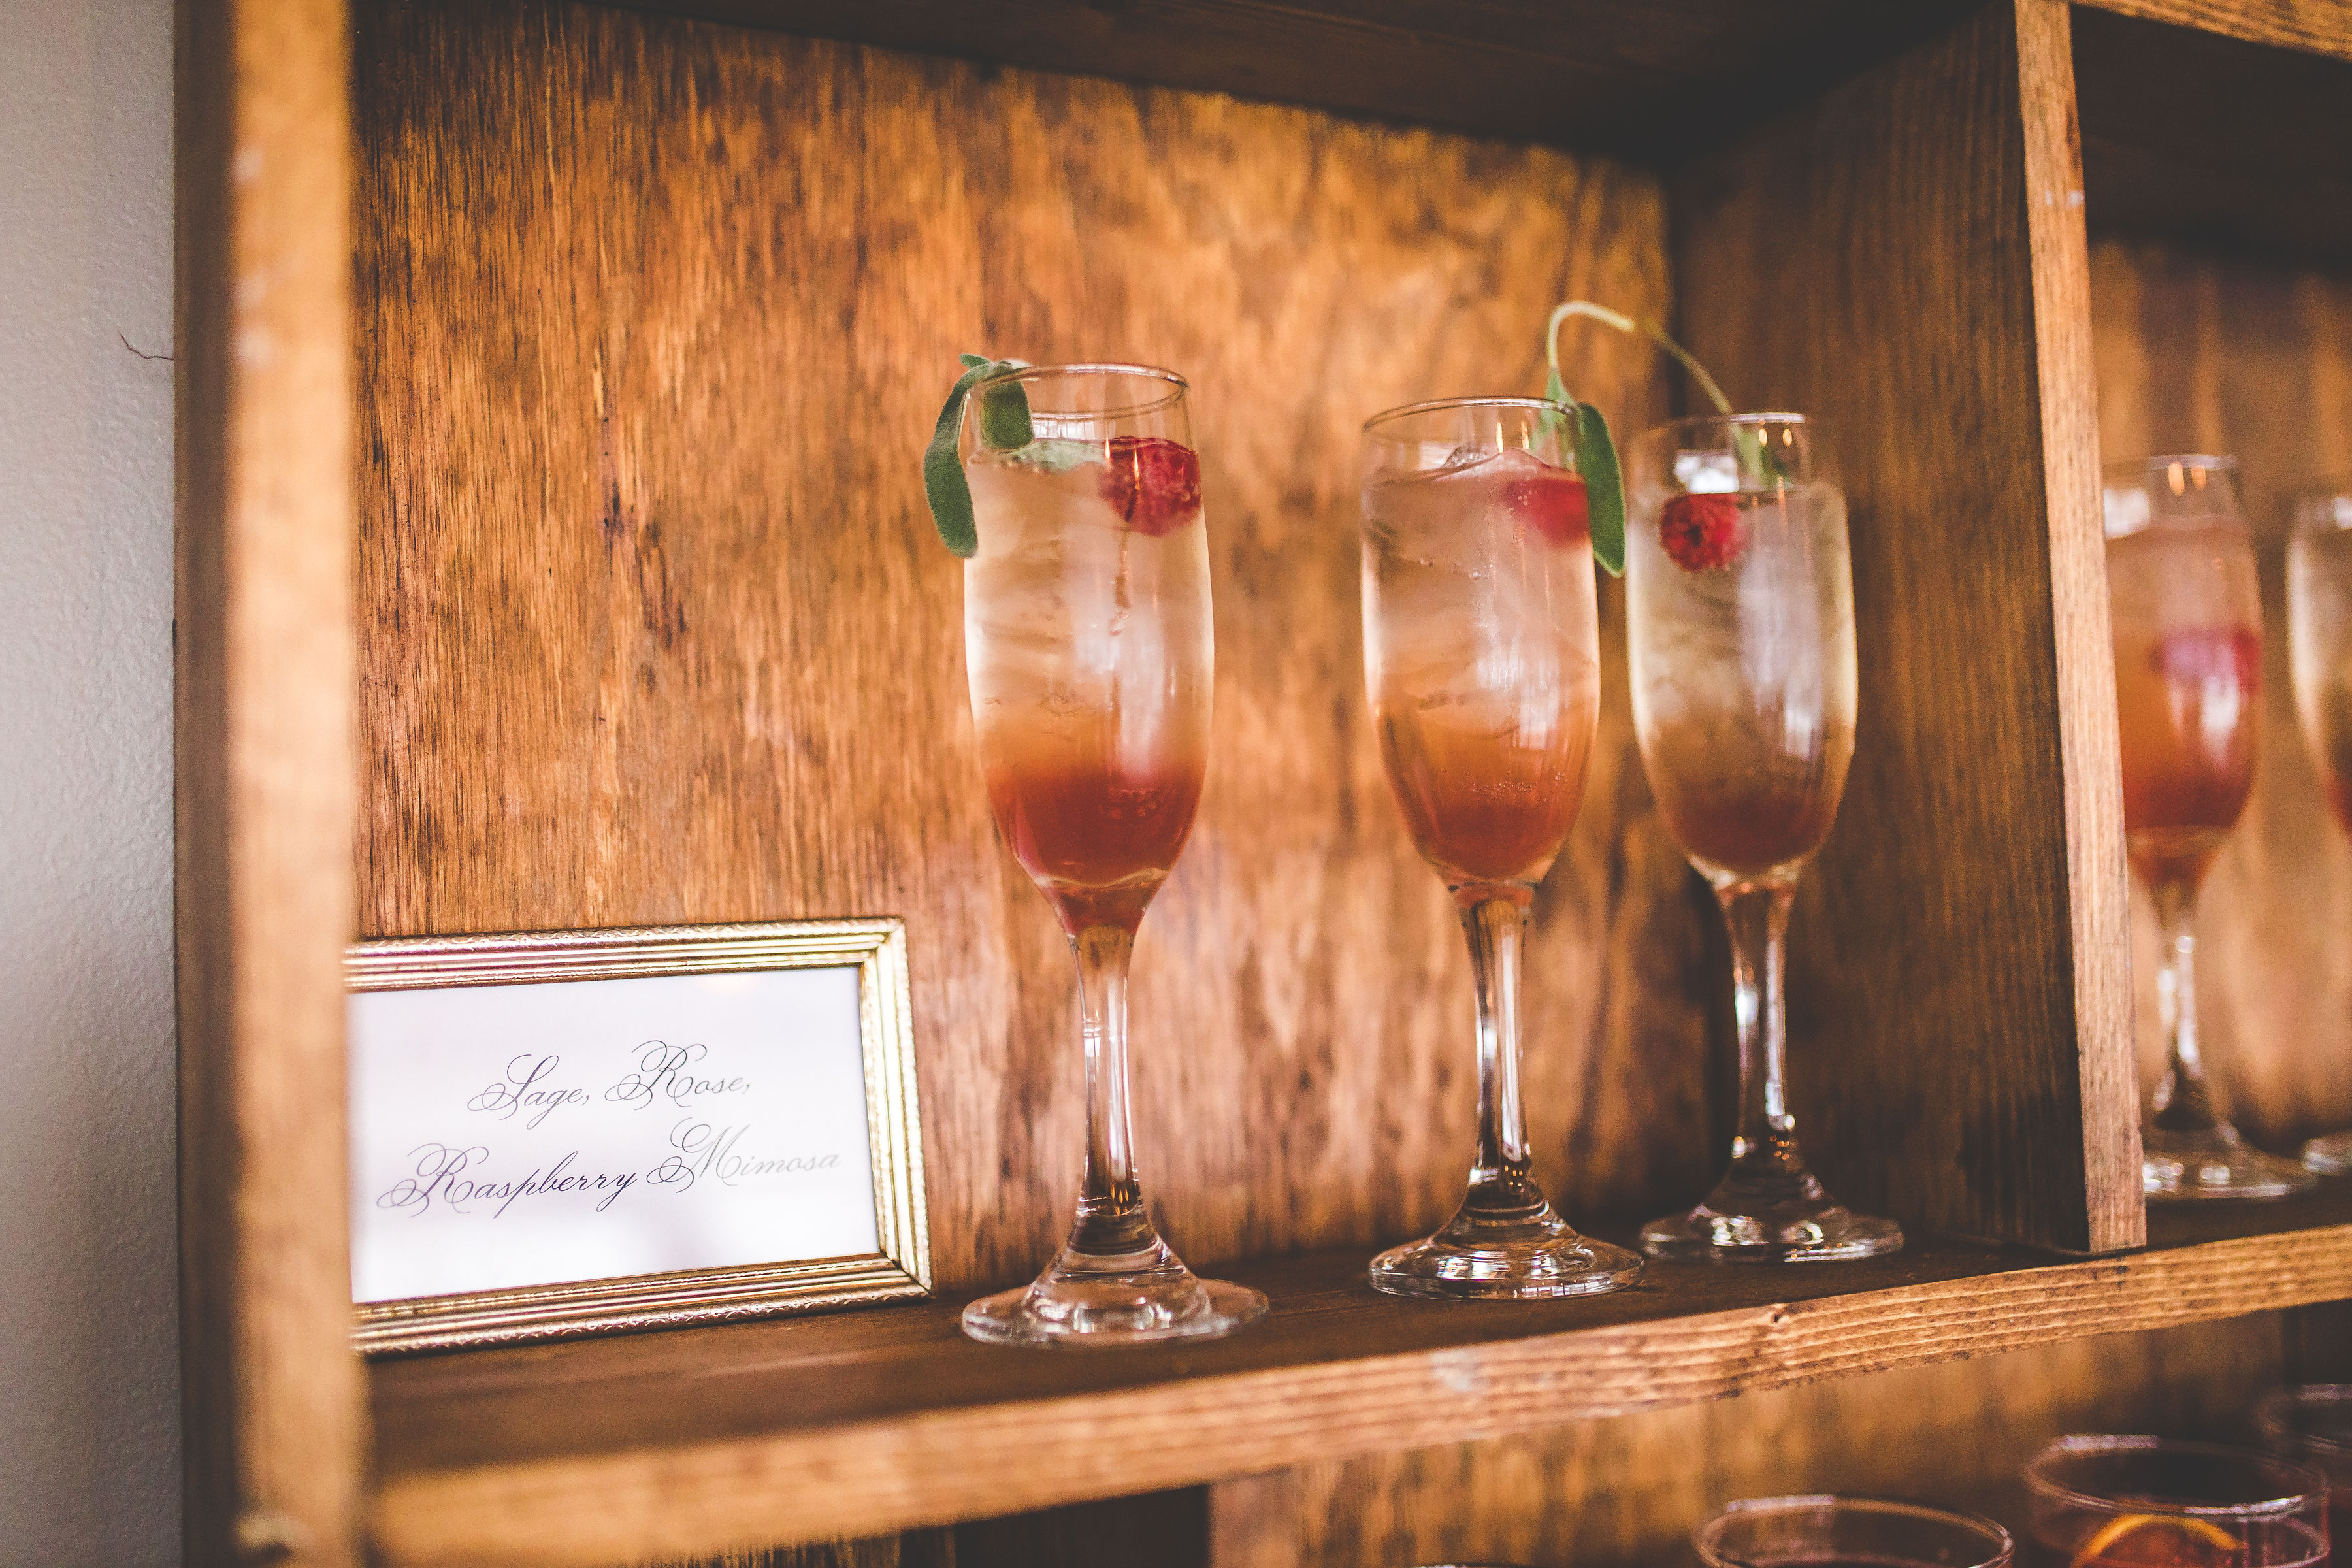 Sage, Rose, and Raspberry Mimosa Photo Credit: Creative Touch Photography